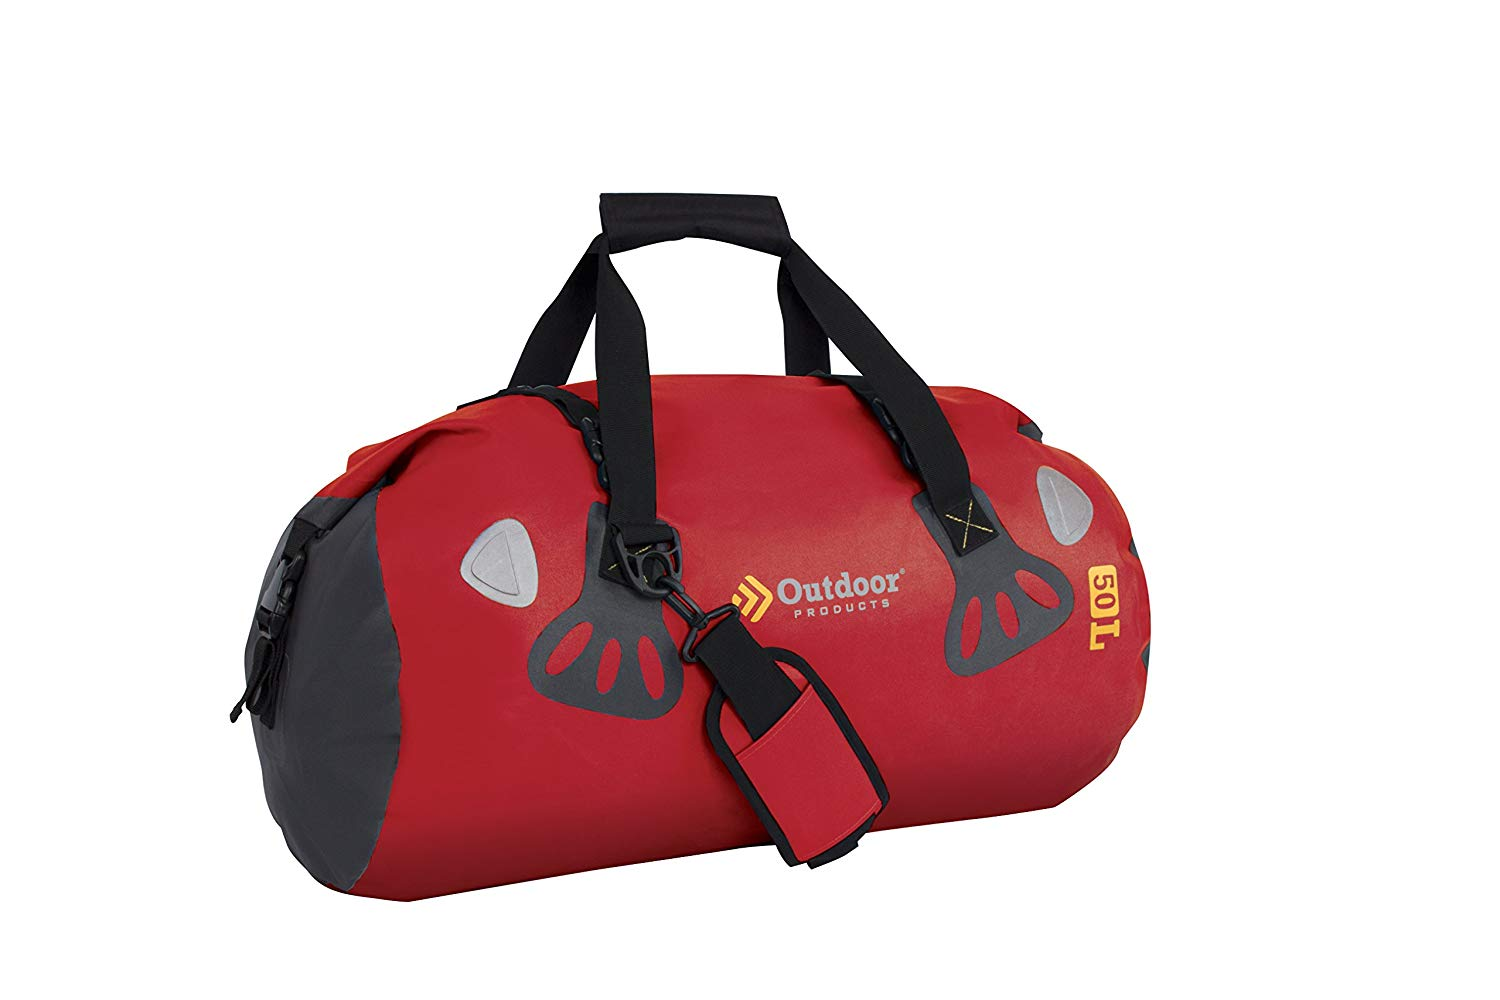 447c67e7afed Get Quotations · Outdoor Products Weather Defense Rafter Duffle